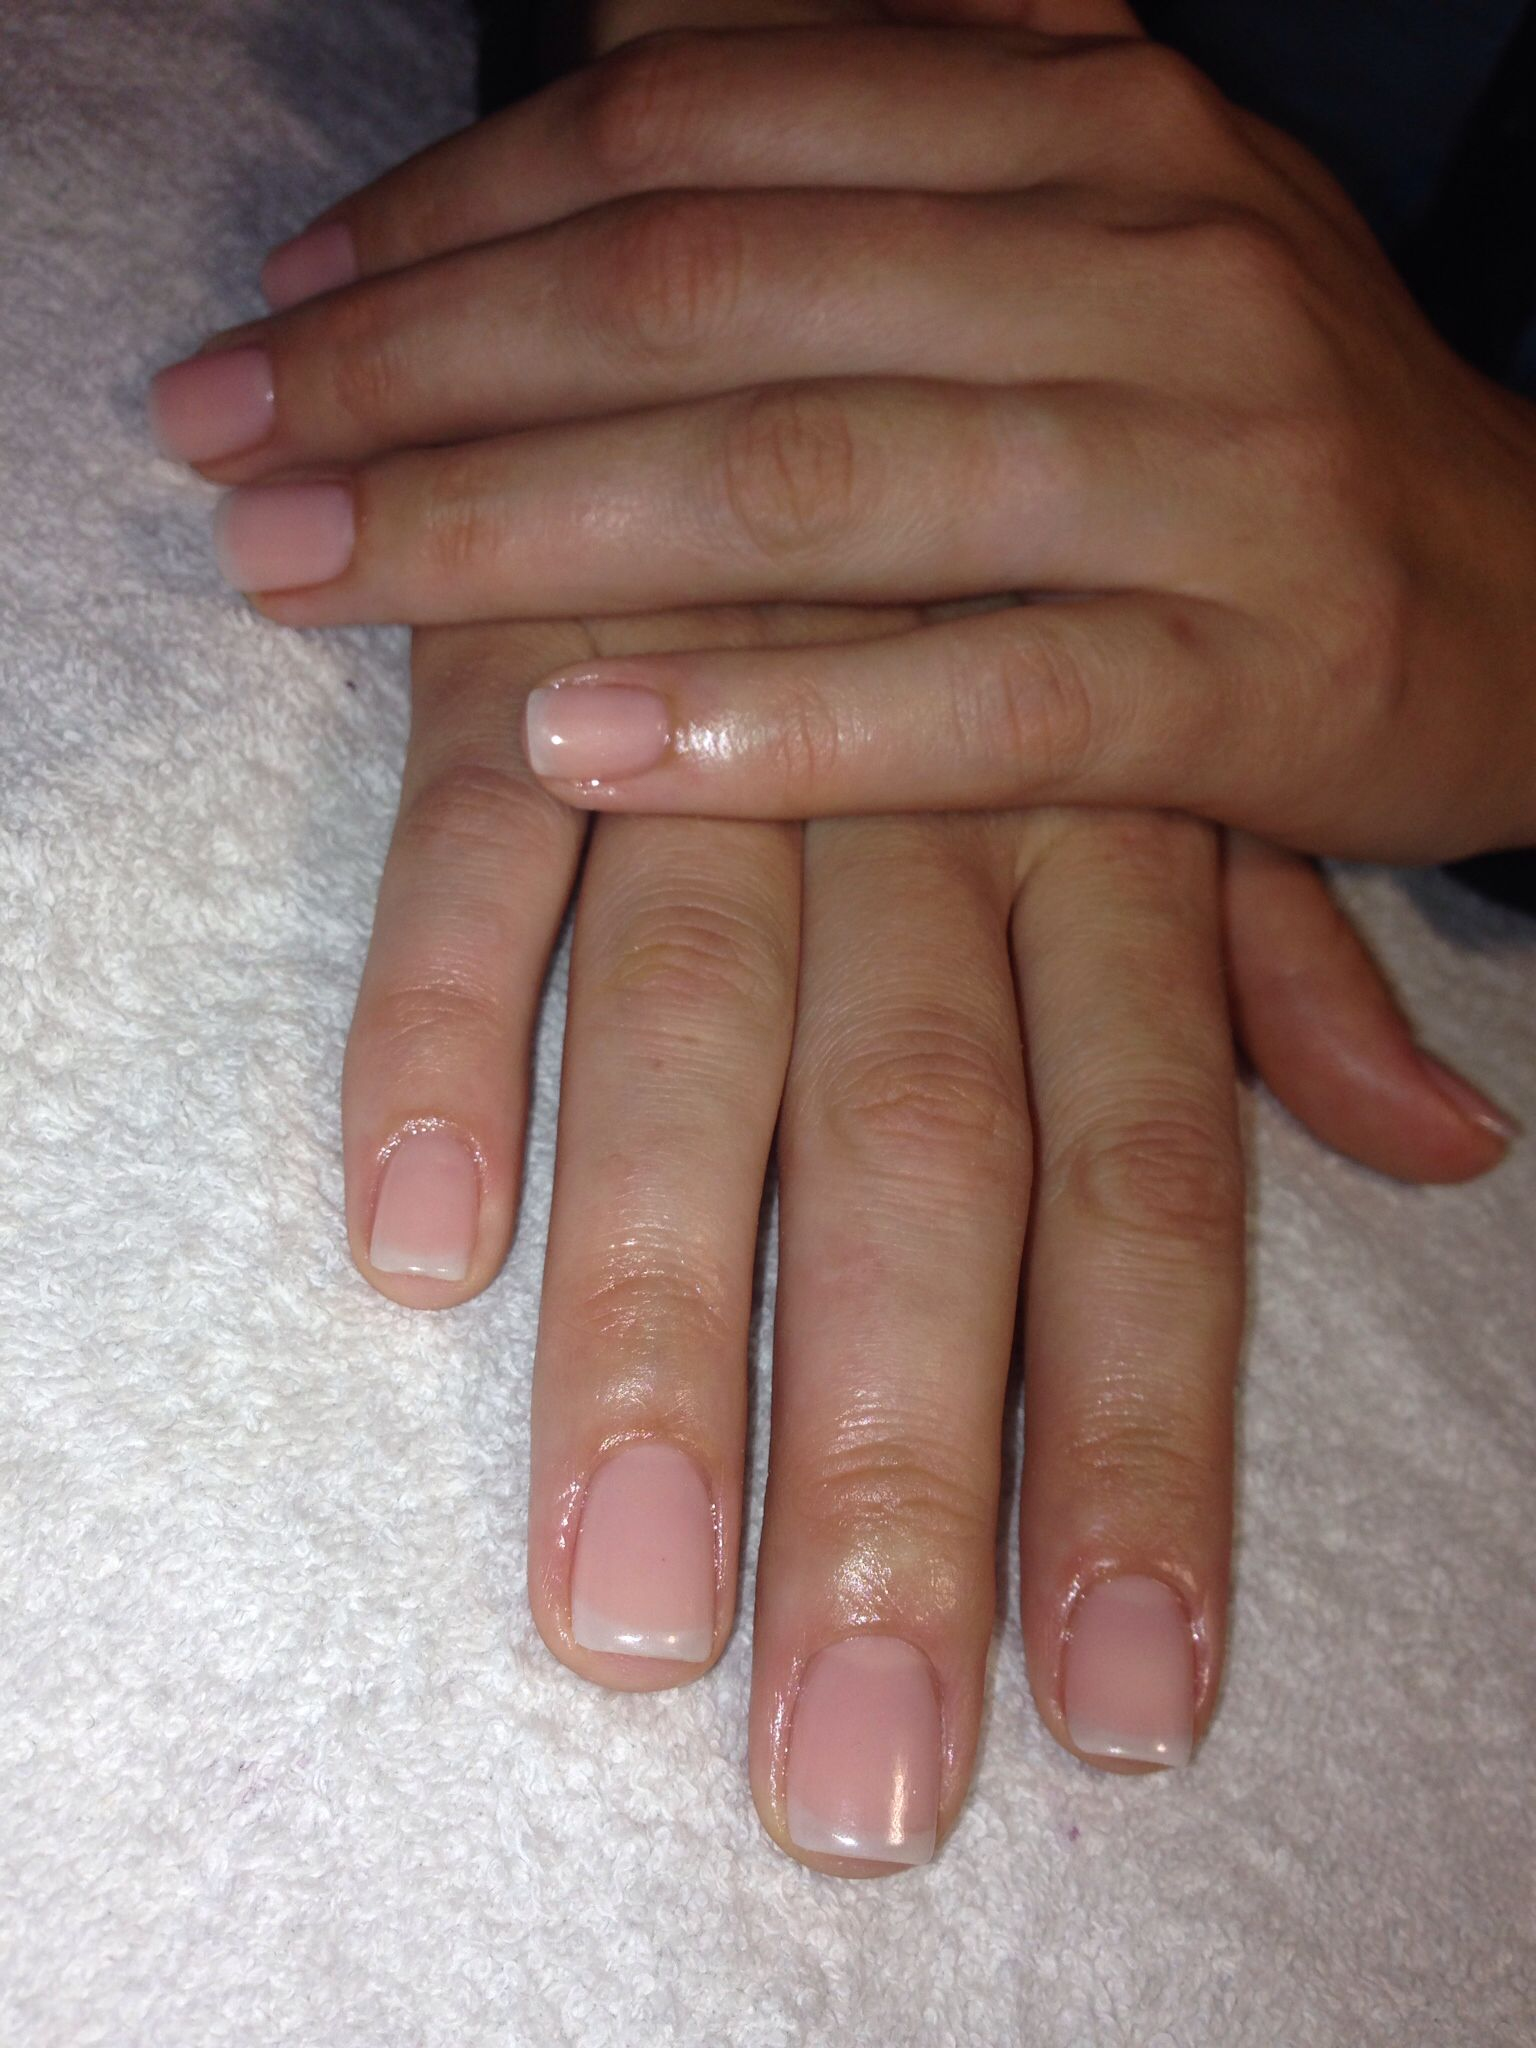 Off White French Acrylic Overlay Natural Looking Acrylic Nails Natural Acrylic Nails Gel Overlay Nails